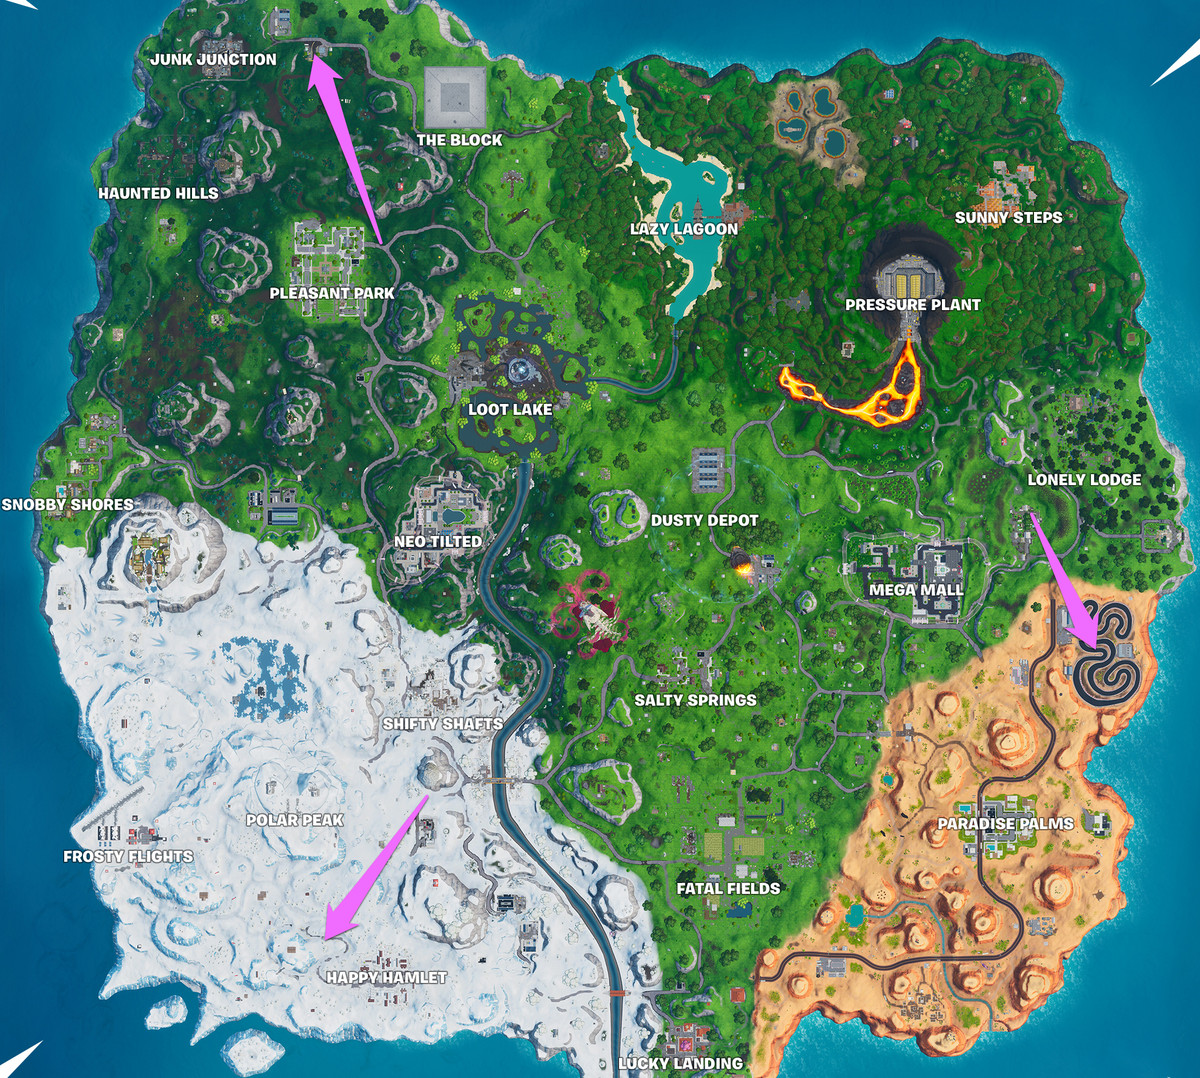 A Fortnite map with the locations of three racetracks marked